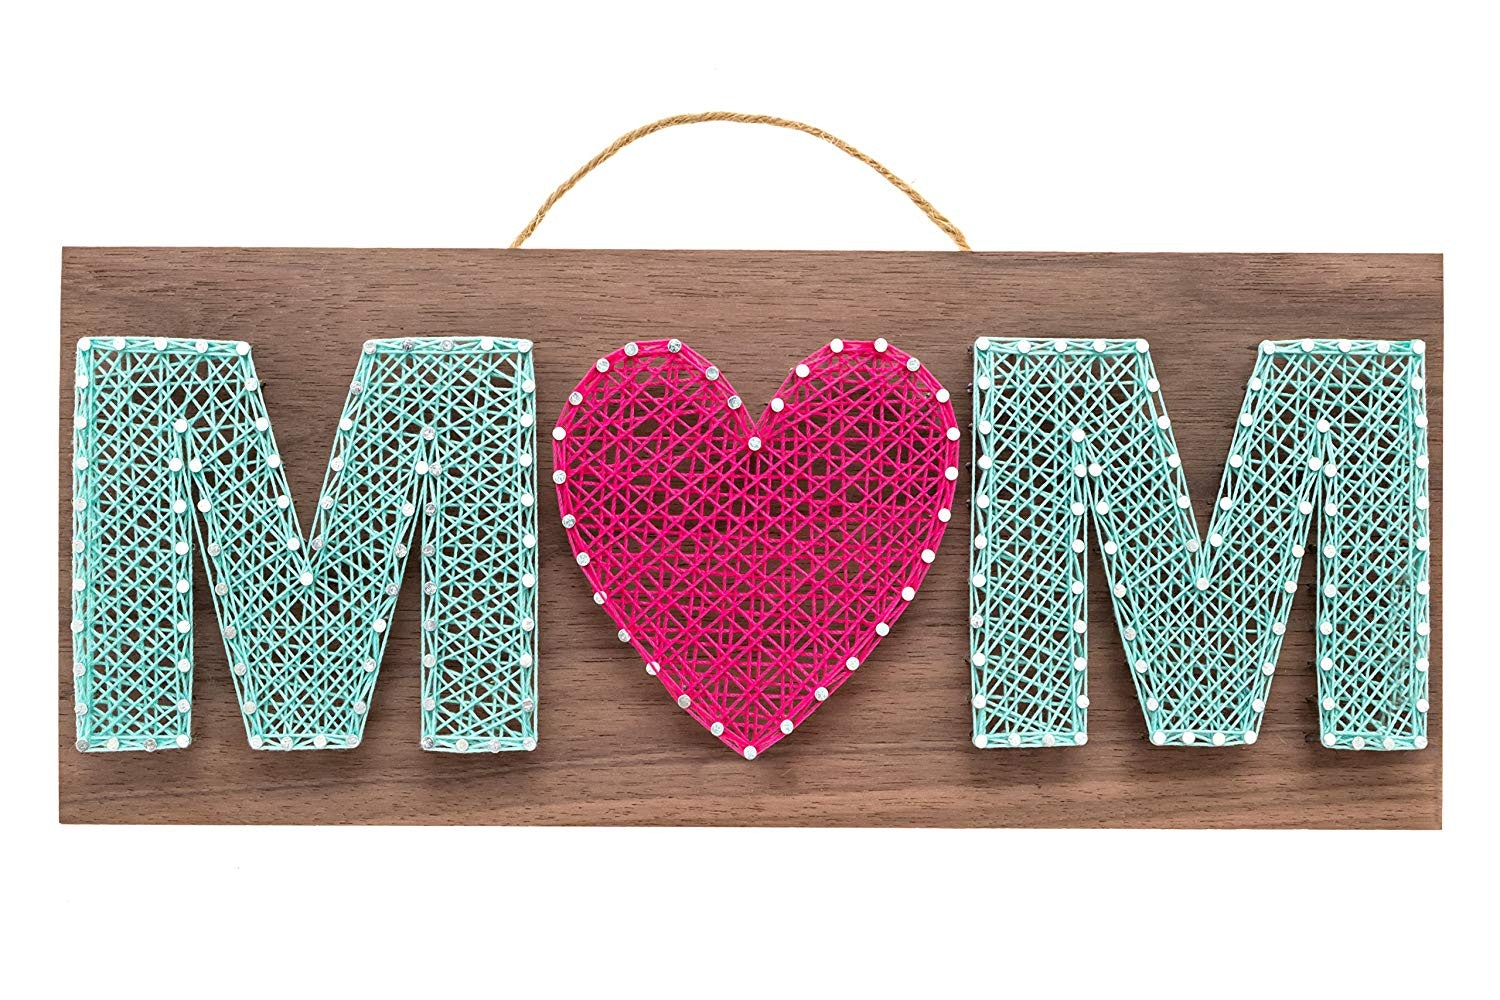 25 Heartwarming Gifts For Your Mom That She\'ll Actually Love